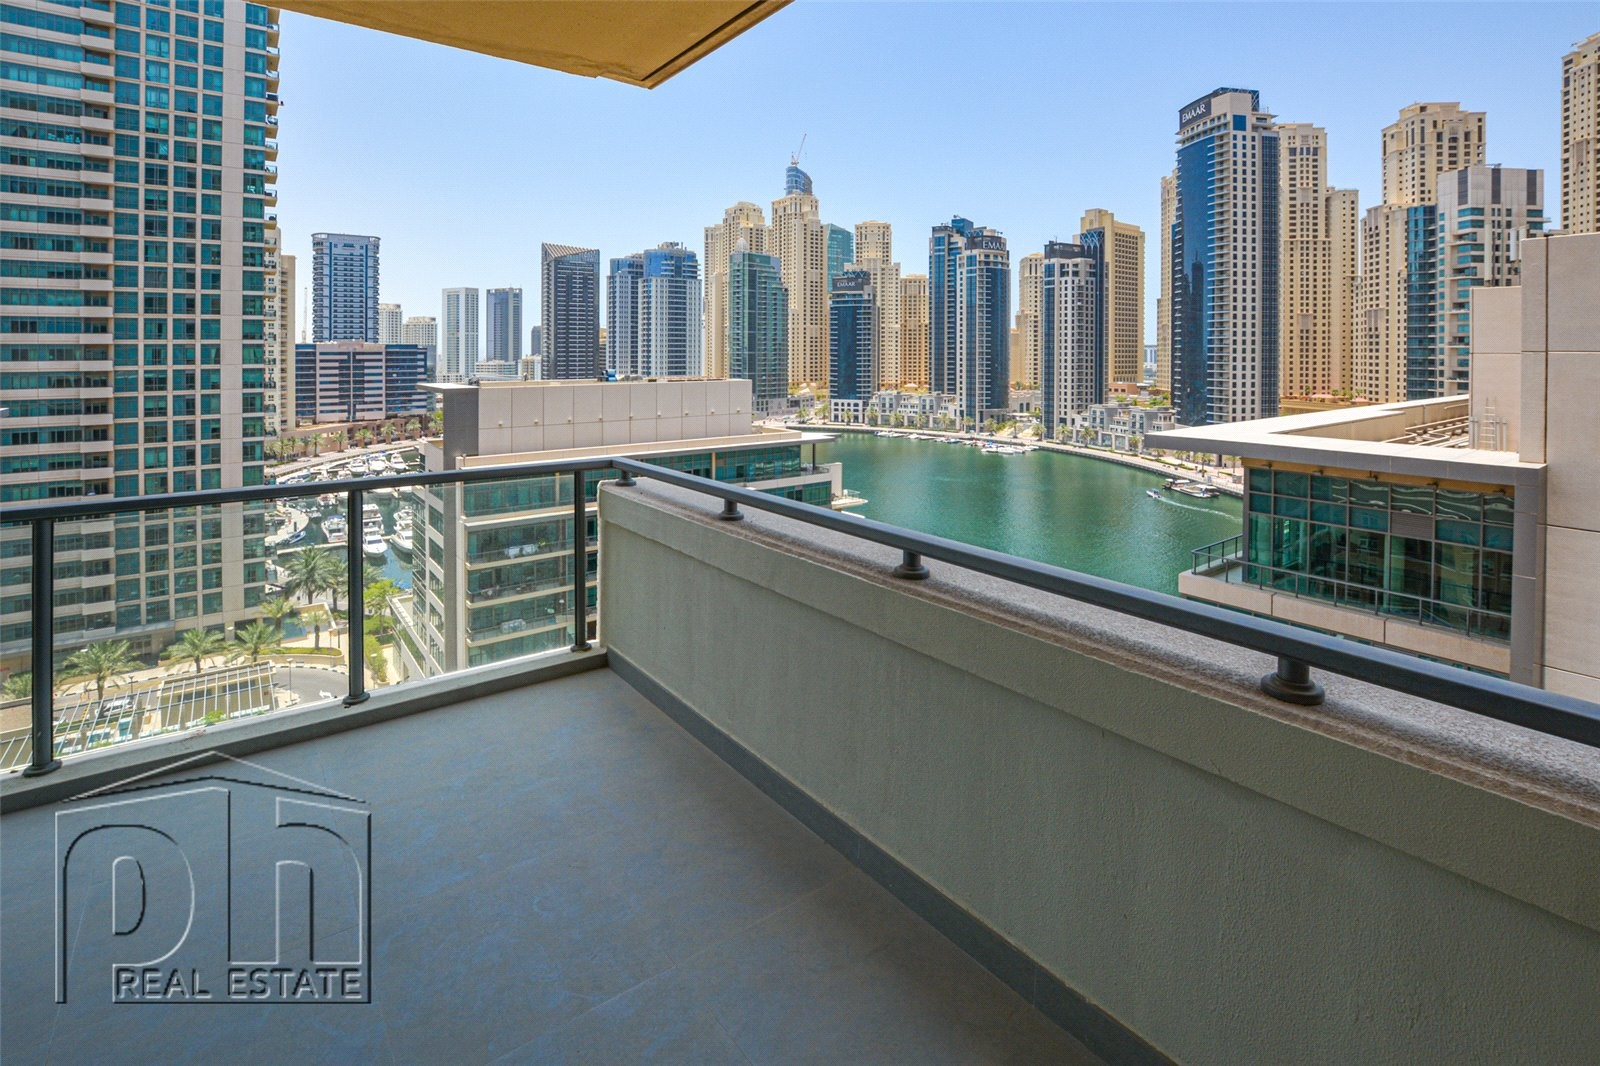 3 Bed + Study | Marina View | Upgraded